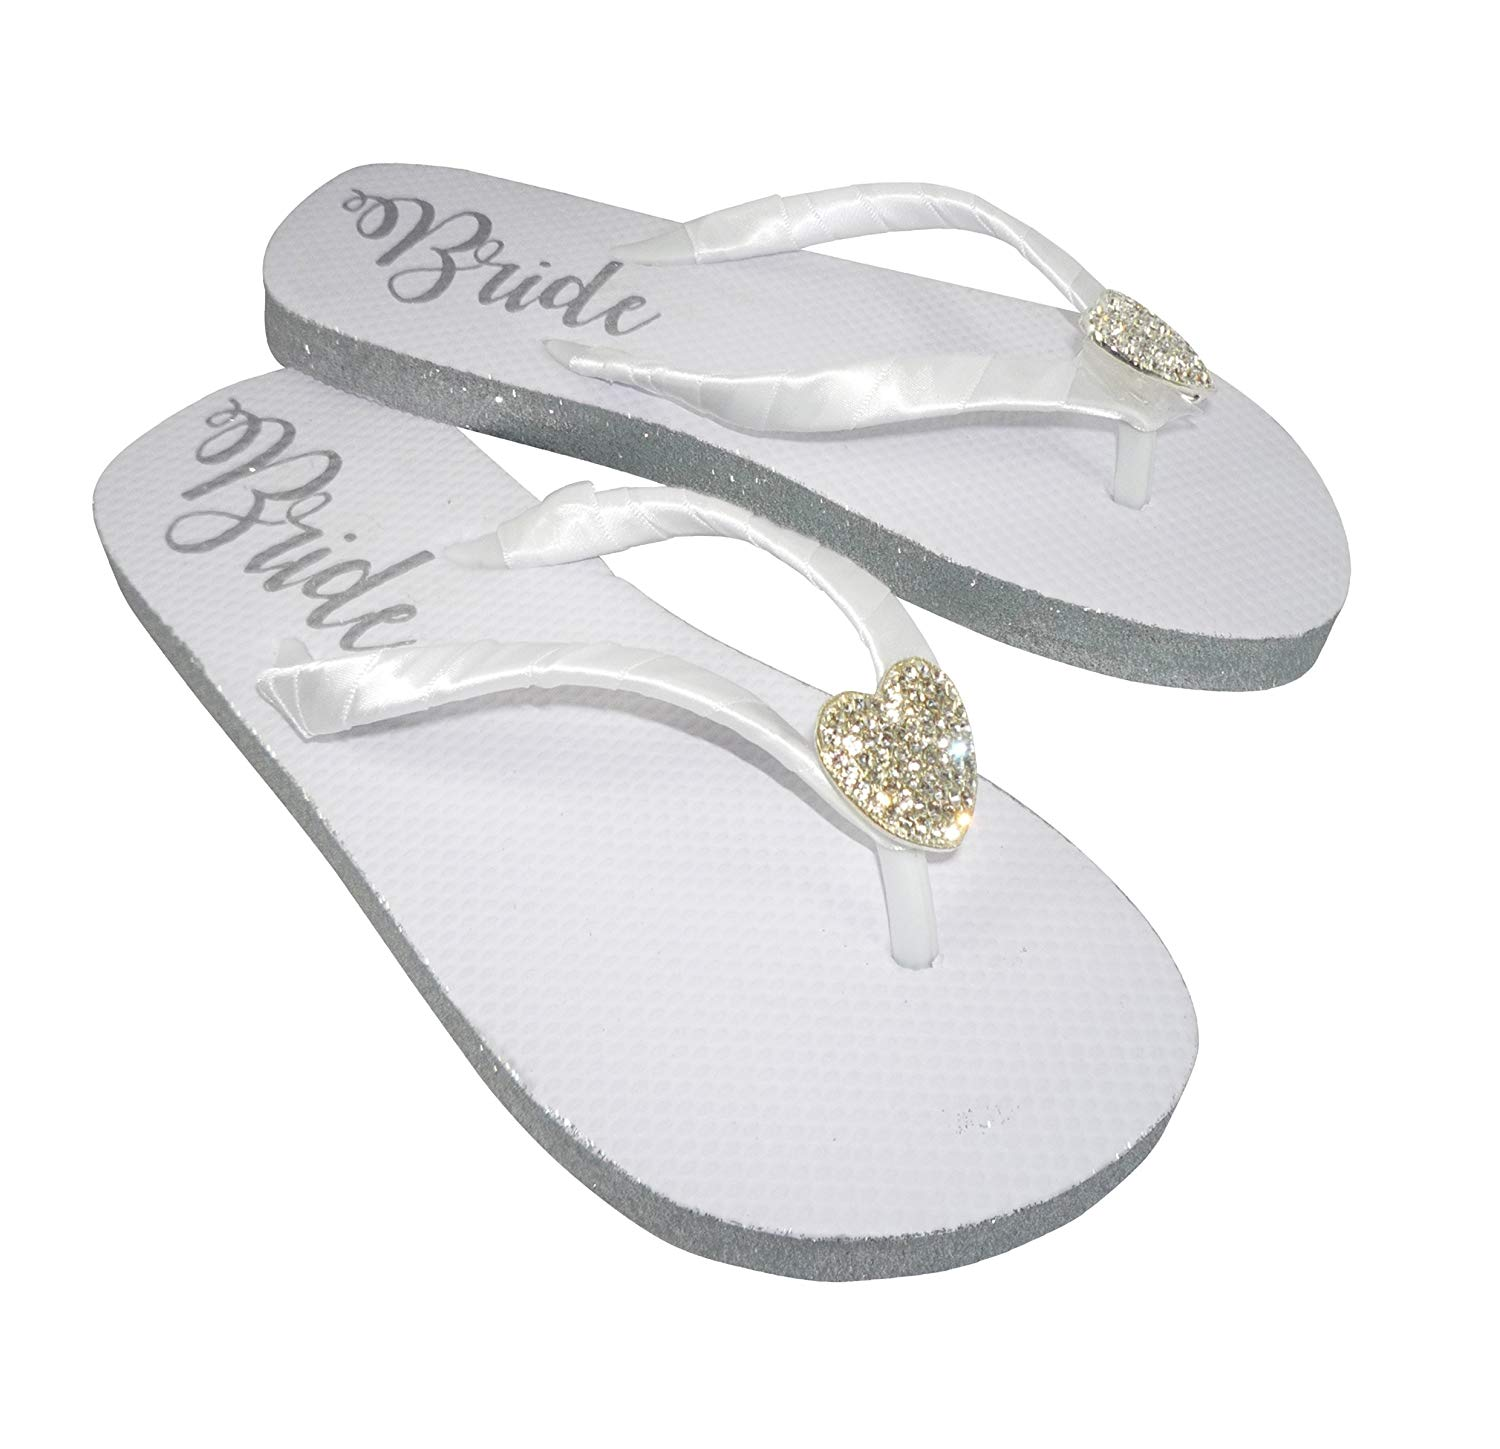 6c1965e6f473 Get Quotations · Silver Glitter Bride Sole Flip Flops with Rhinestone  Embellishment